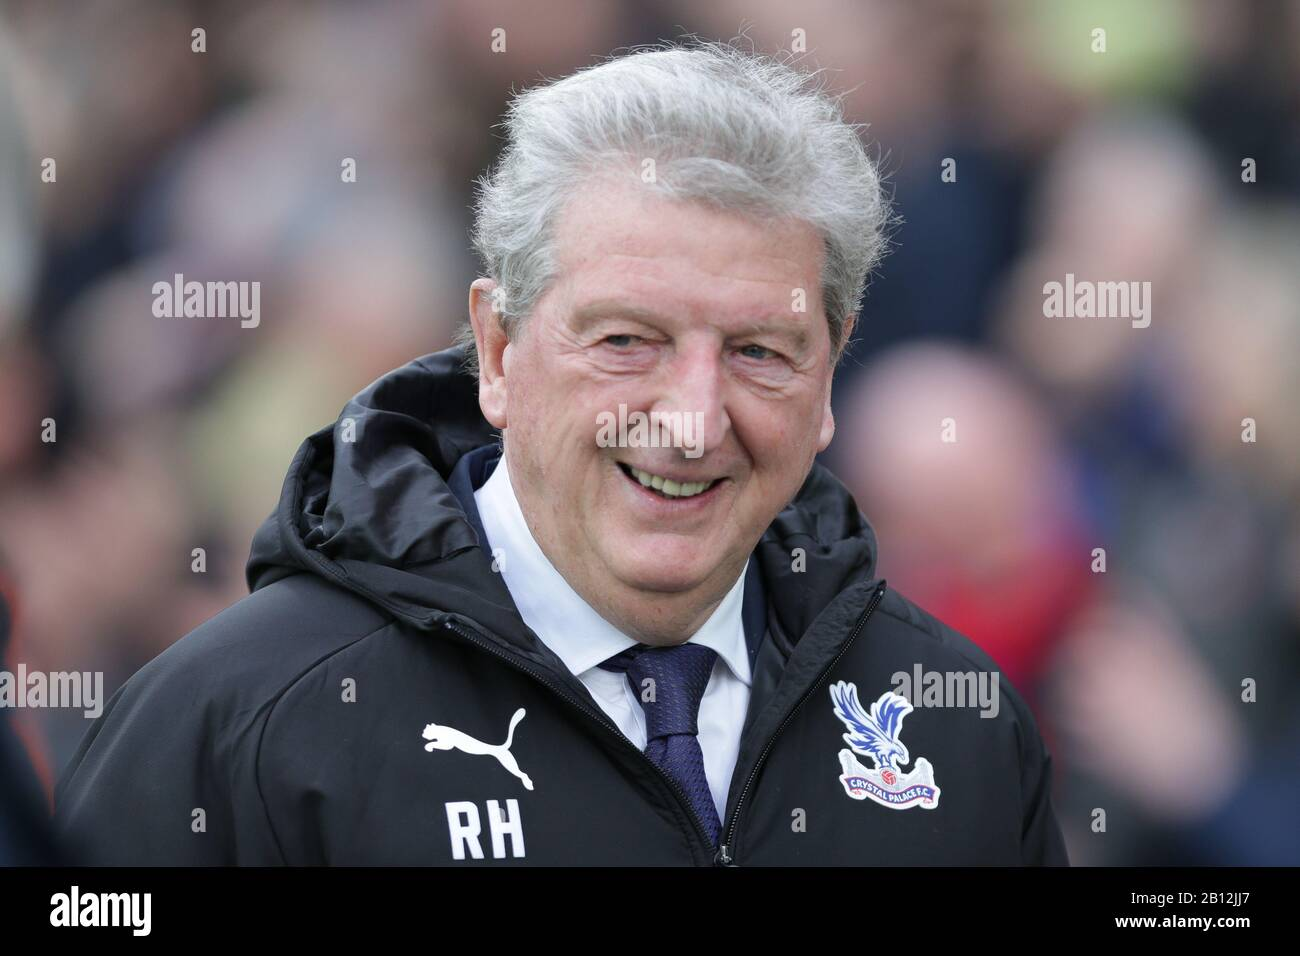 London, UK. 22nd Feb, 2020.  Roy Hodgson manager of Crystal Palace smiling during the Premier League match between Crystal Palace and Newcastle United at Selhurst Park, London on Saturday 22nd February 2020. (Credit: Jacques Feeney | MI News) Photograph may only be used for newspaper and/or magazine editorial purposes, license required for commercial use Credit: MI News & Sport /Alamy Live News Stock Photo